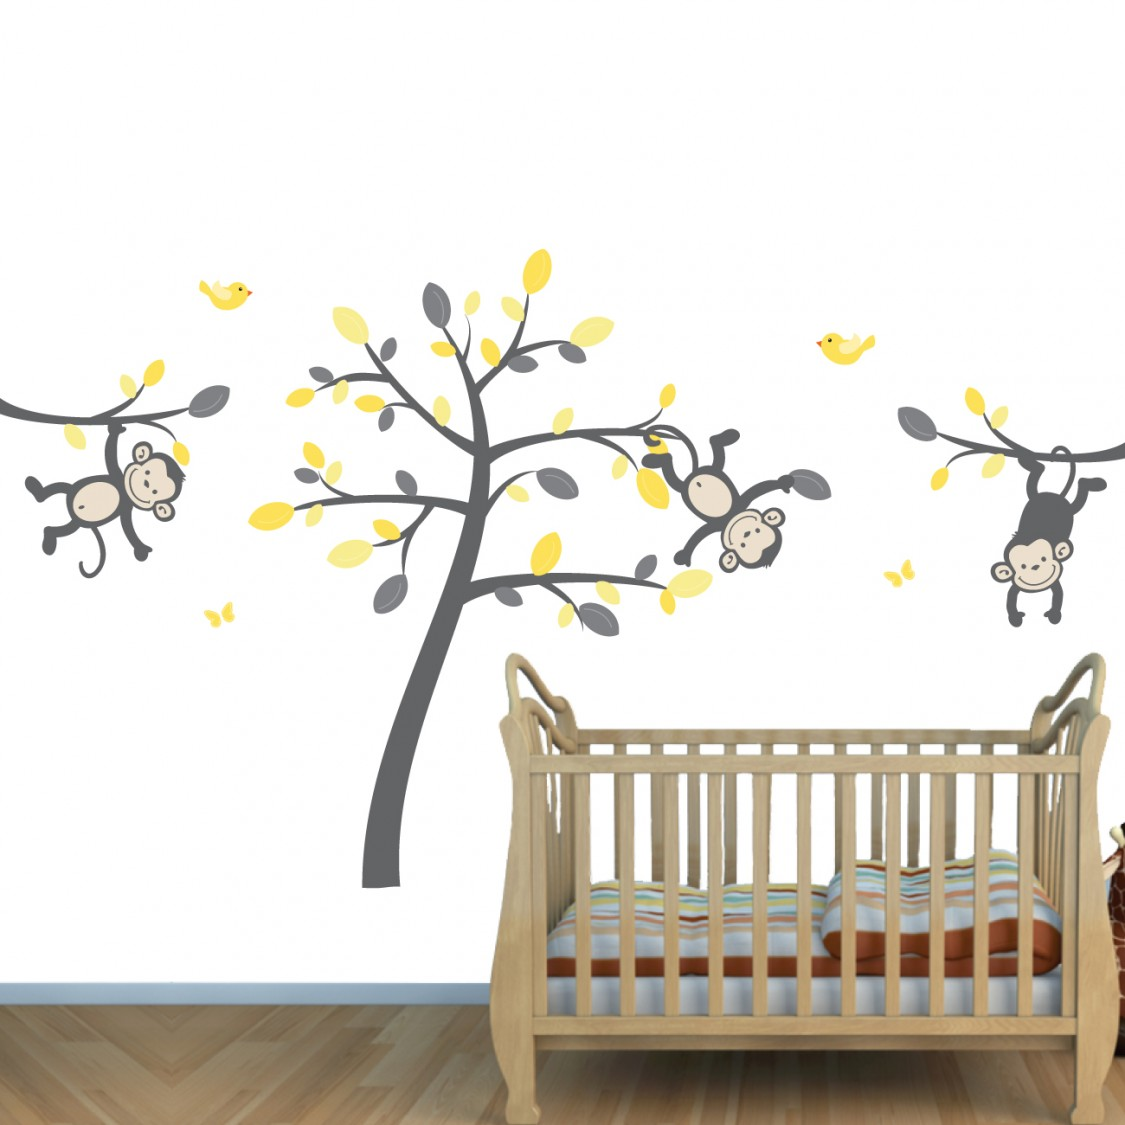 Yellow u0026 Gray Safari Murals With Monkey Wall Decals For Baby Room